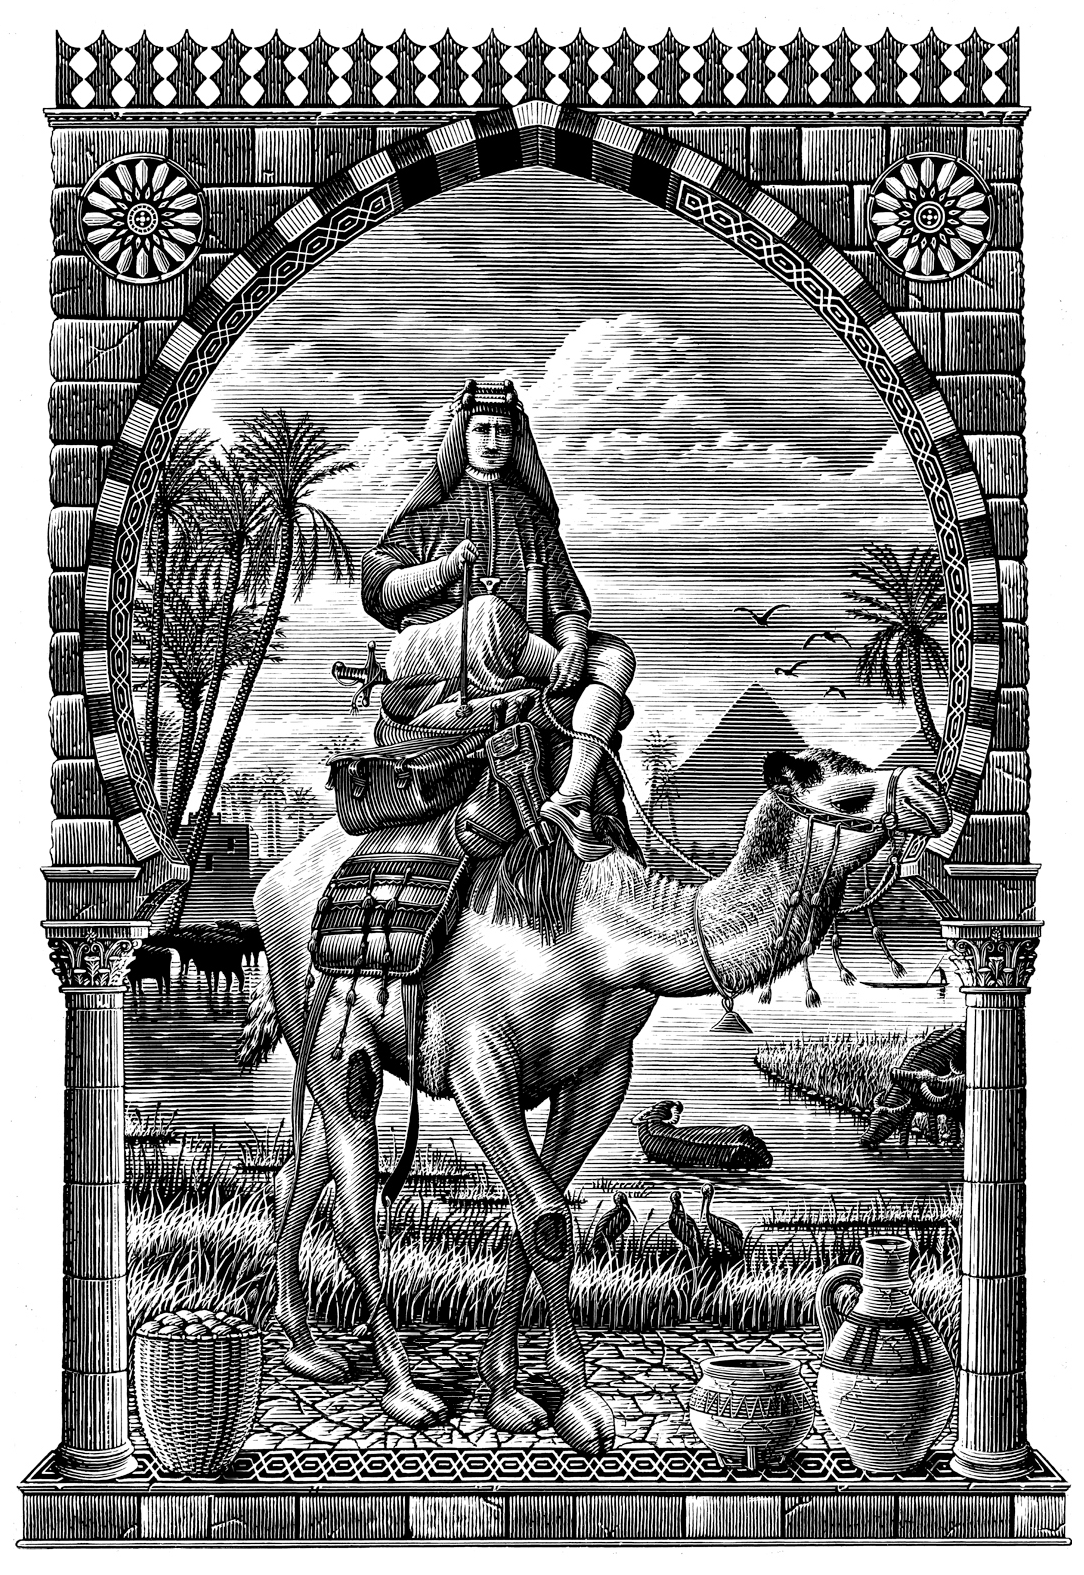 The Historical Scratchboard Illustration Collection by Steven Noble